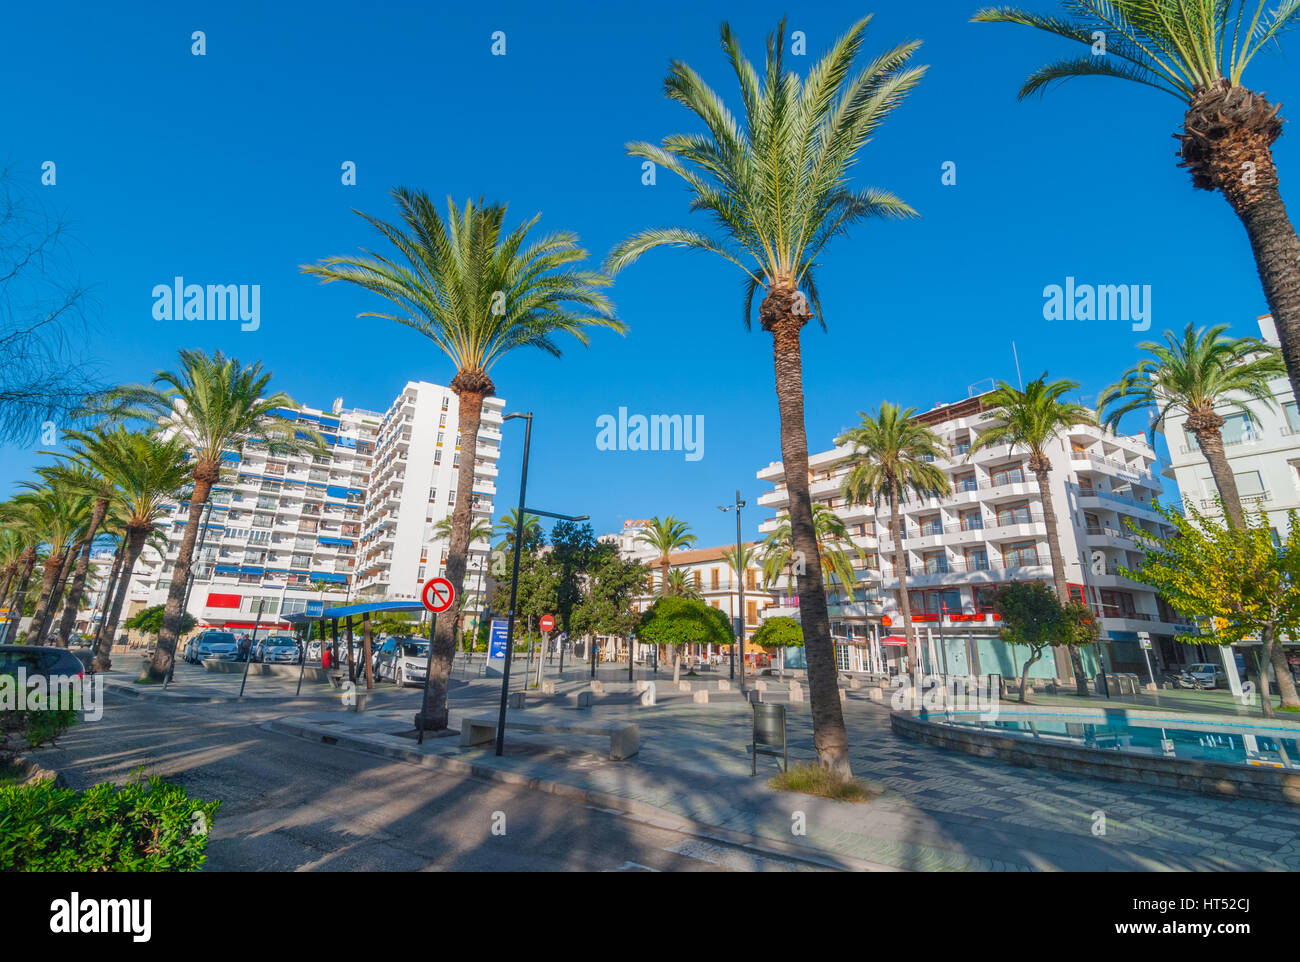 Sant Antoni De Portmany, Ibiza, November 6th, 2013:   Tourism in Spain.  People wait at a taxi stand.  Palm tree - Stock Image